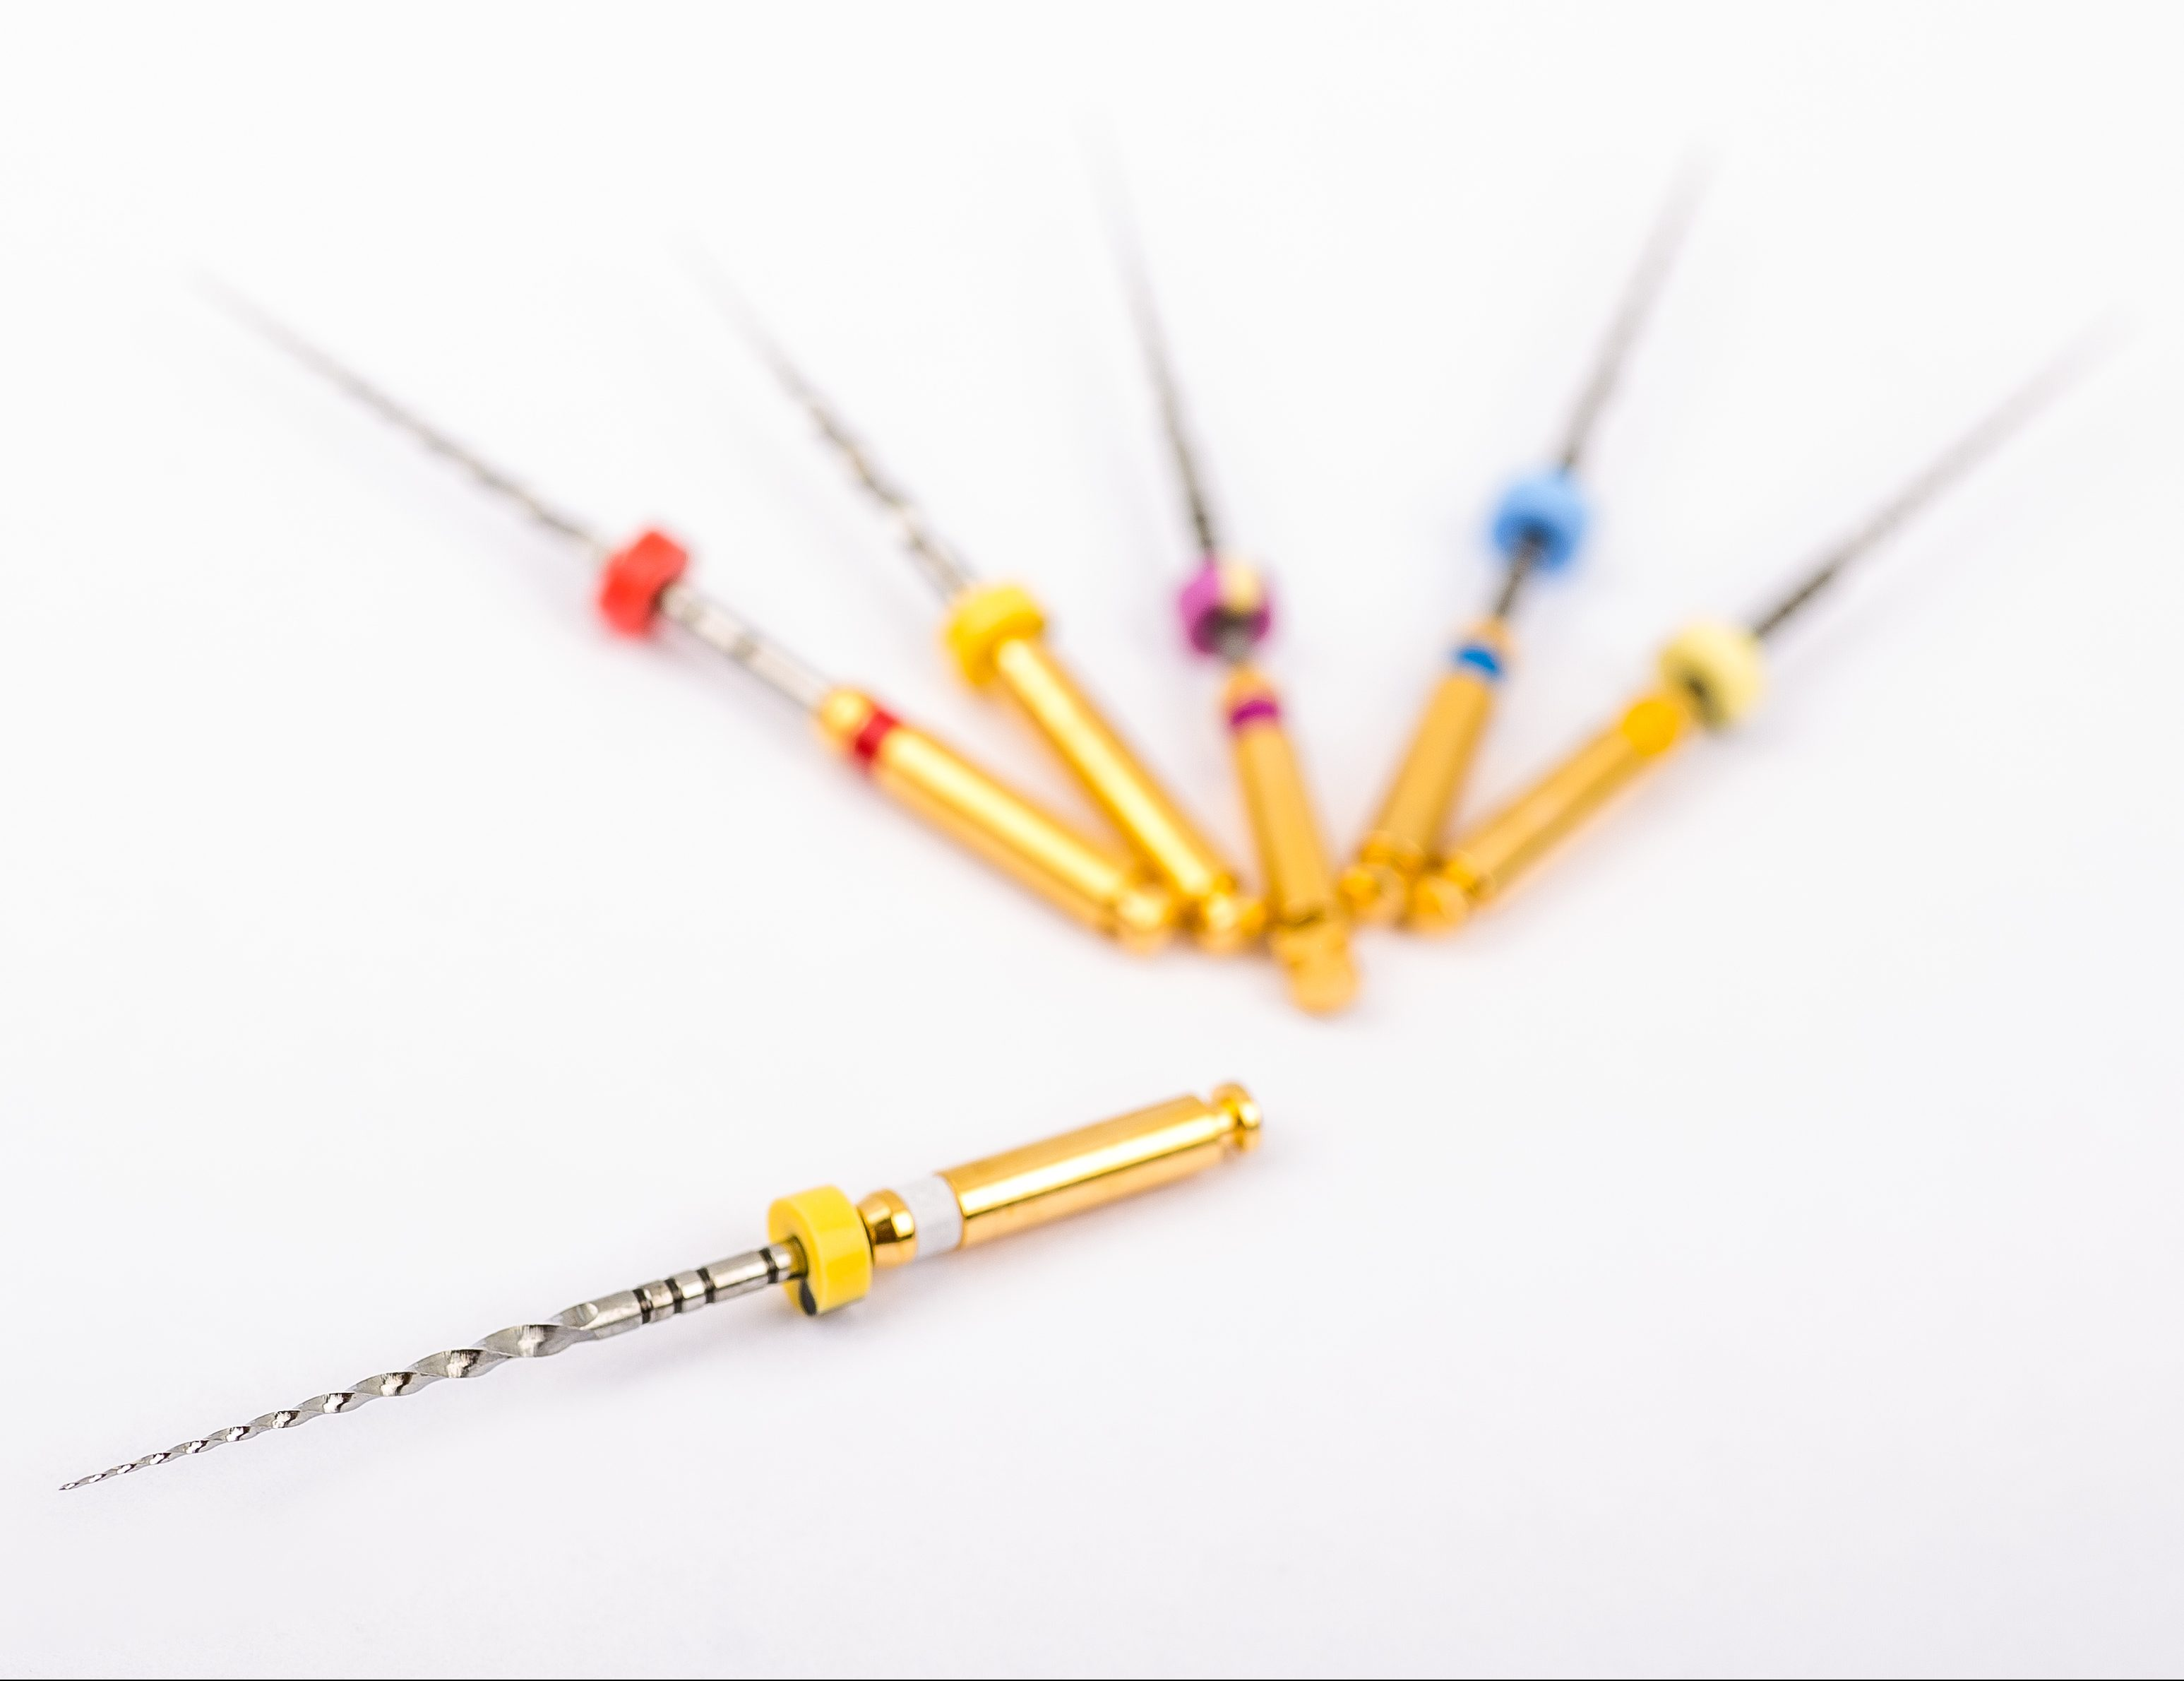 Foto: (Isolated Dental Pro Tapers set for root canal treatment ) ©mielag: Shutterstock